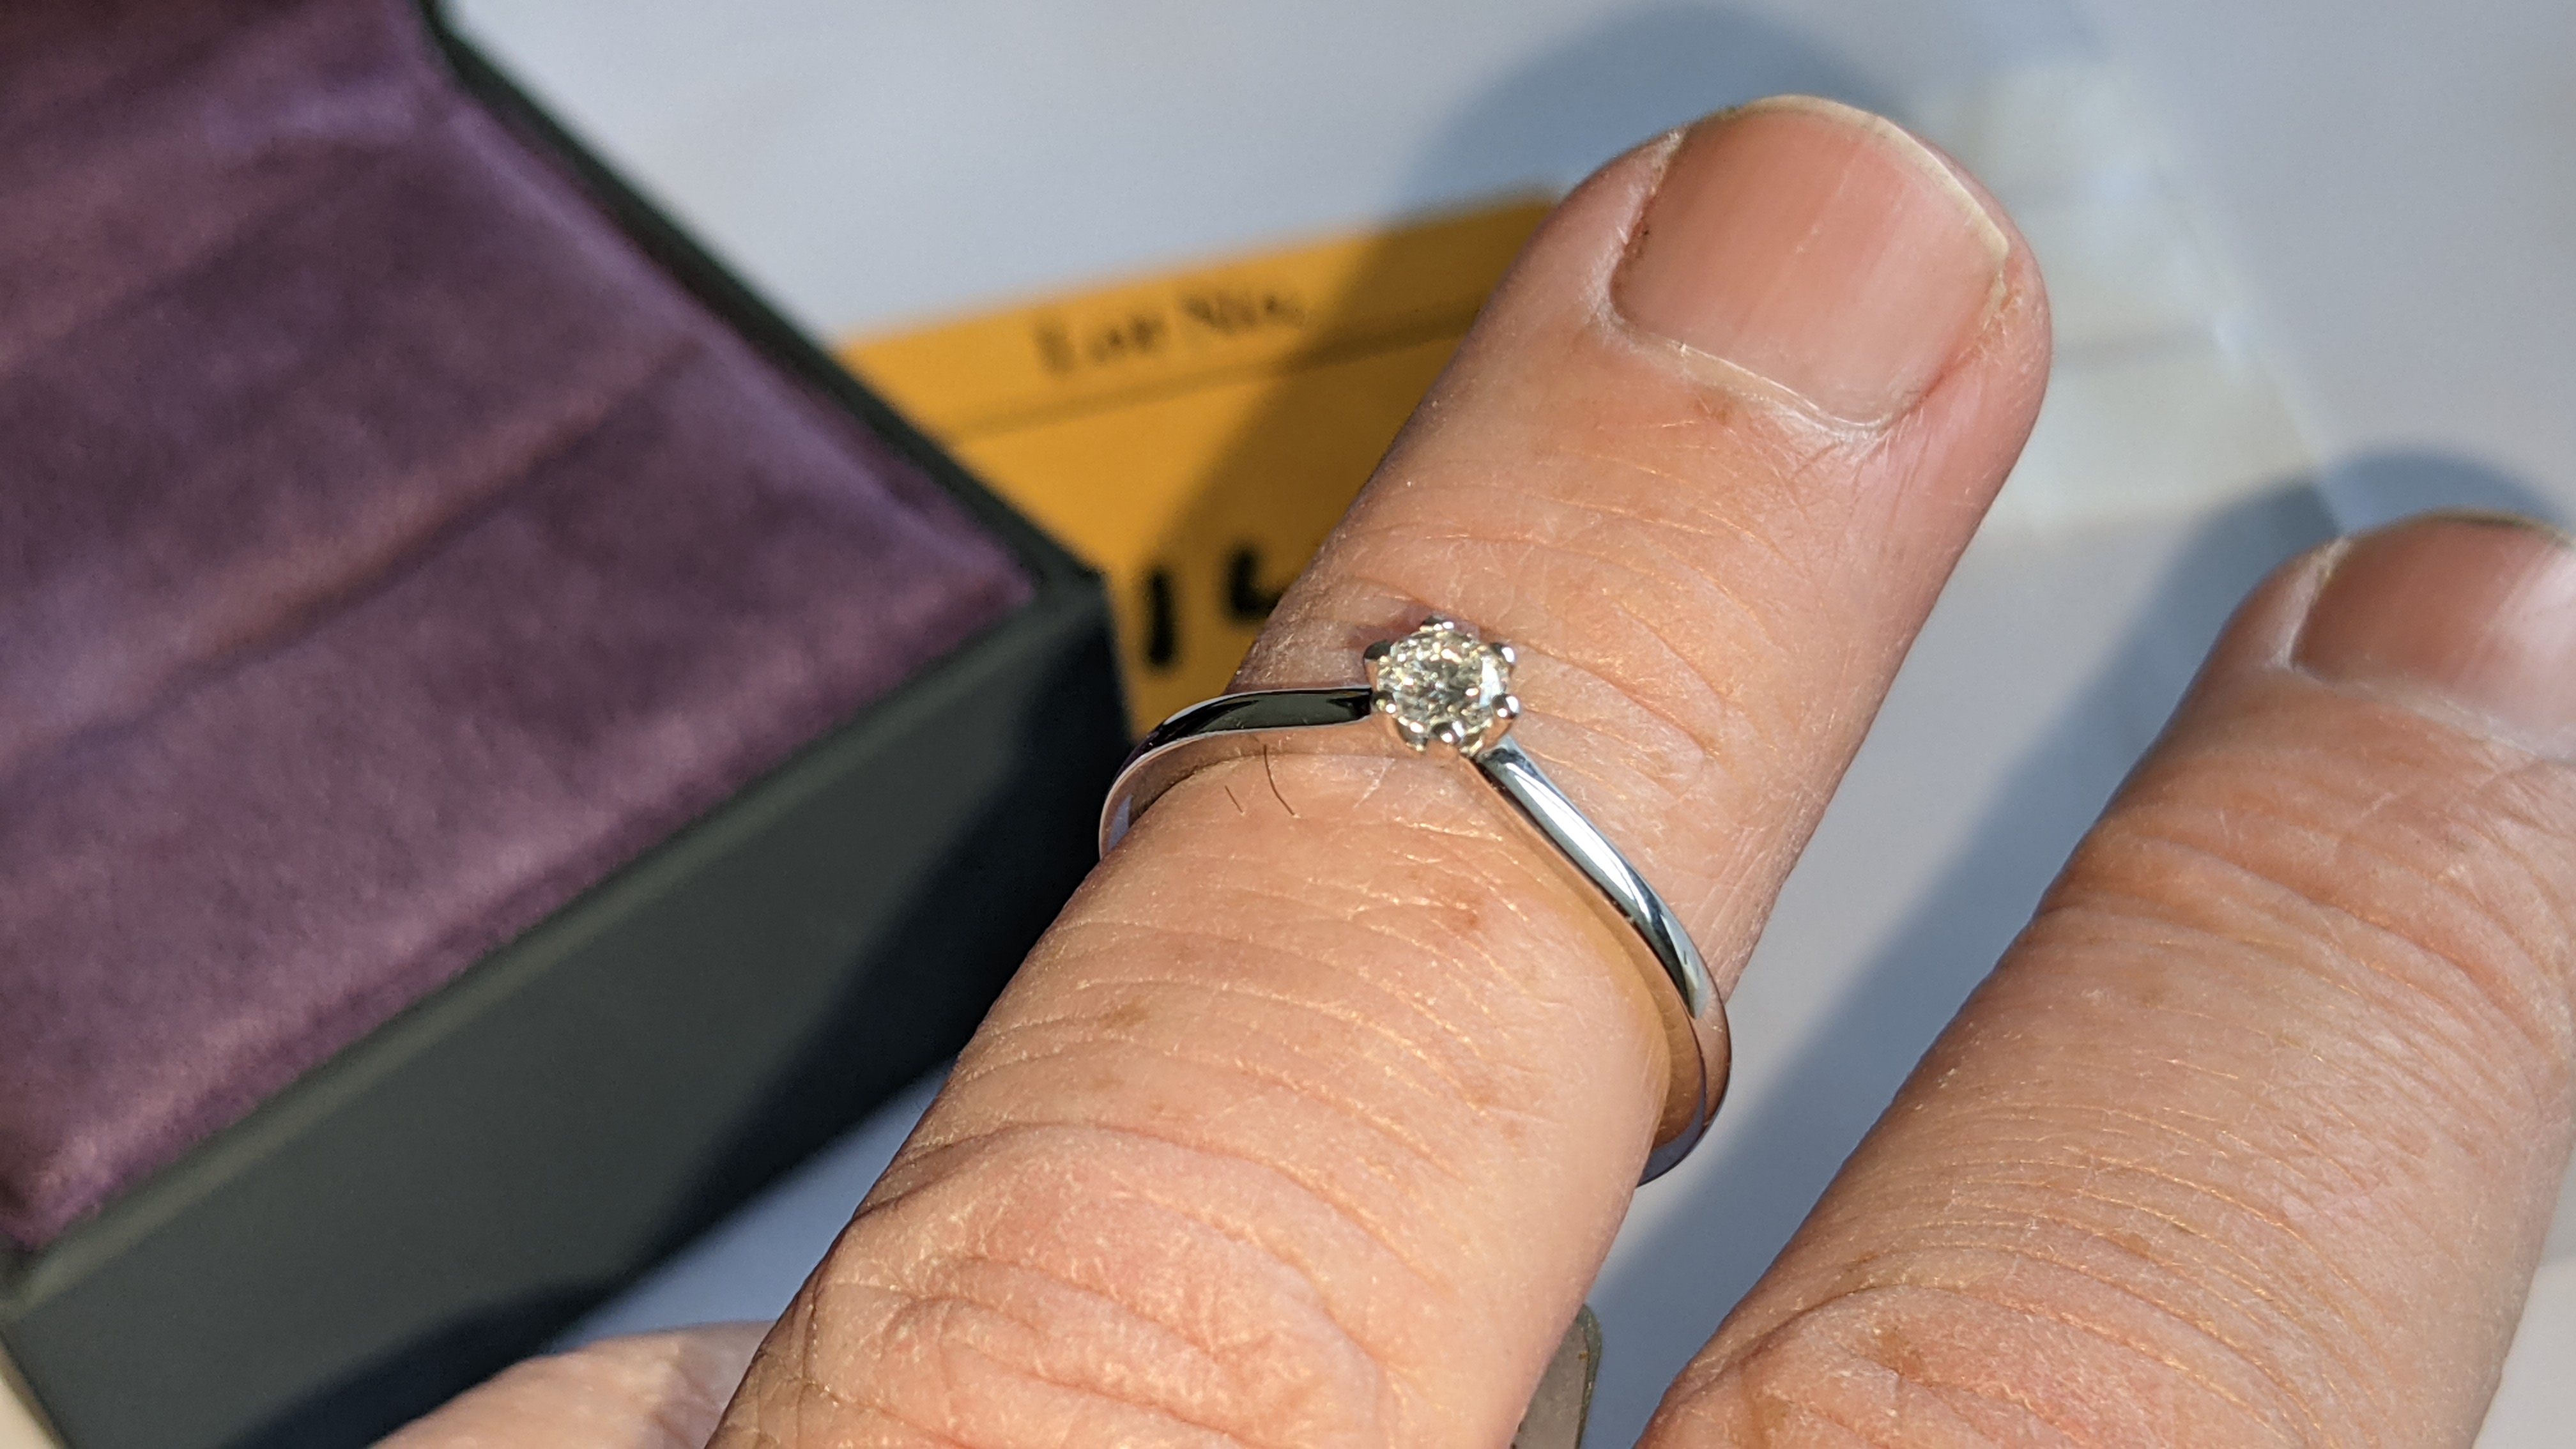 18ct white gold ring with 0.20ct G/Si brilliant cut diamond RRP £1,152 - Image 14 of 16